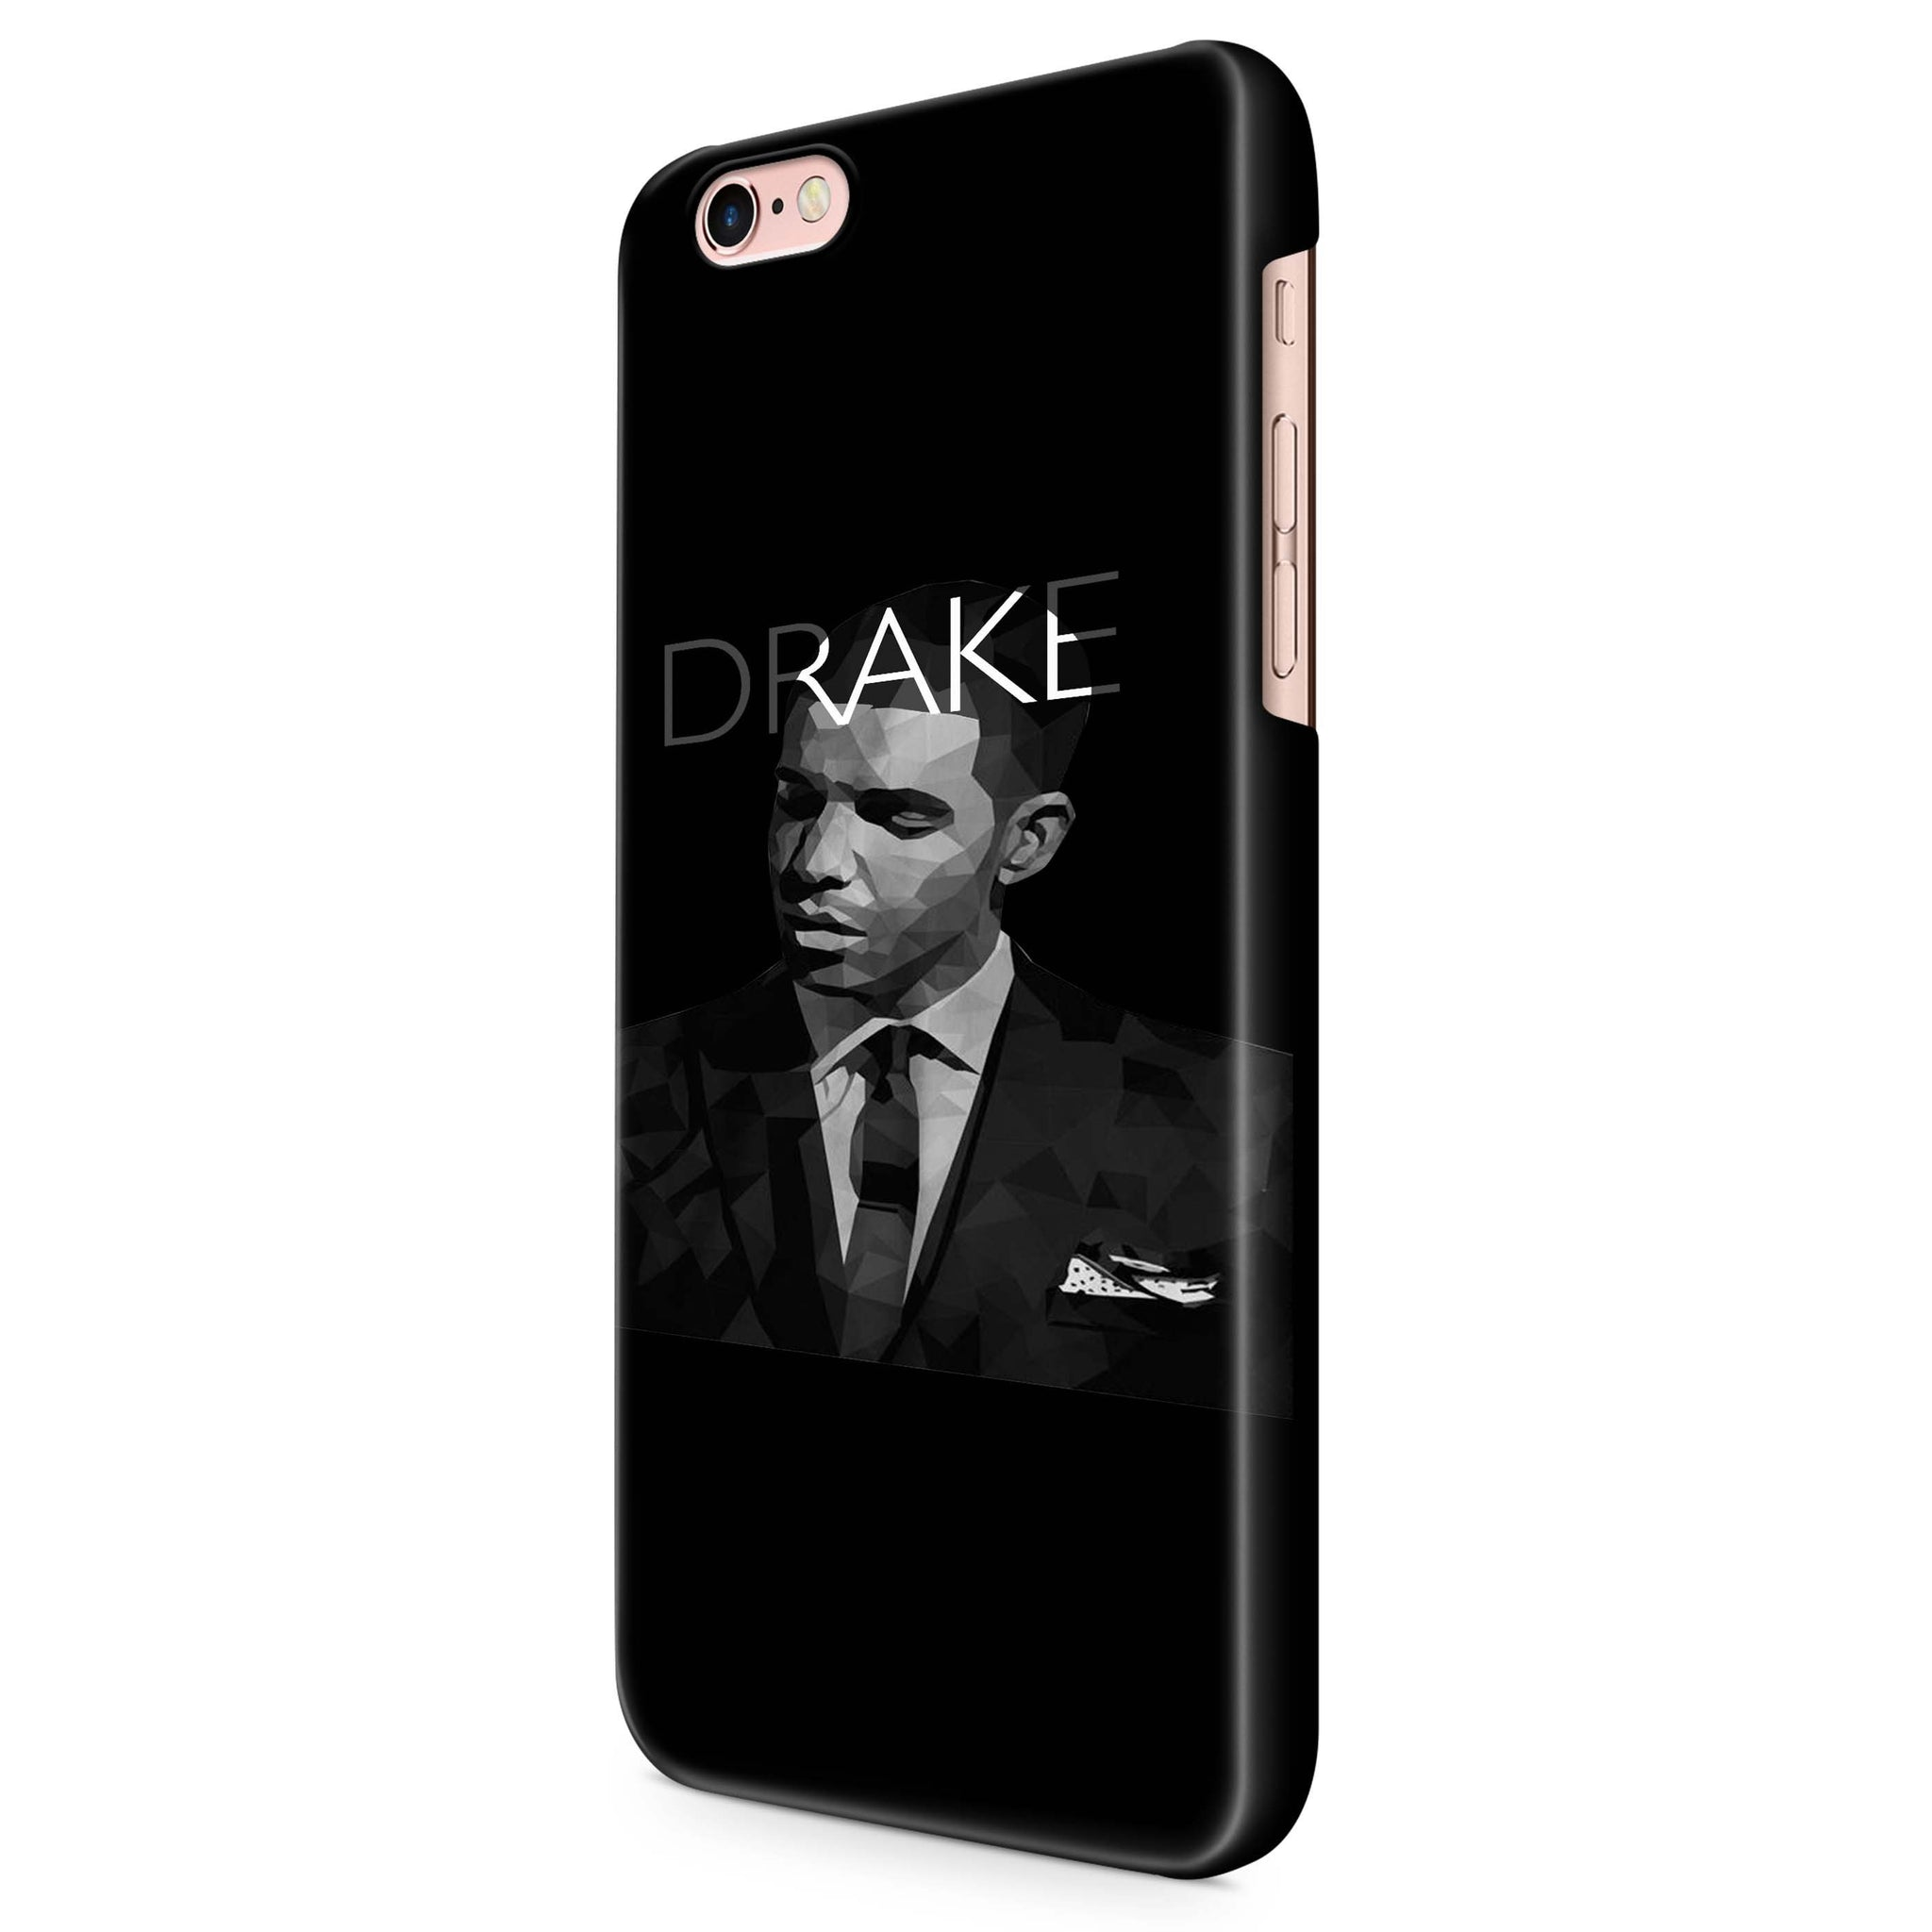 Drake iPhone 5 / 5S | 6 / 6S | 6 Plus / 6S Plus 3D Case